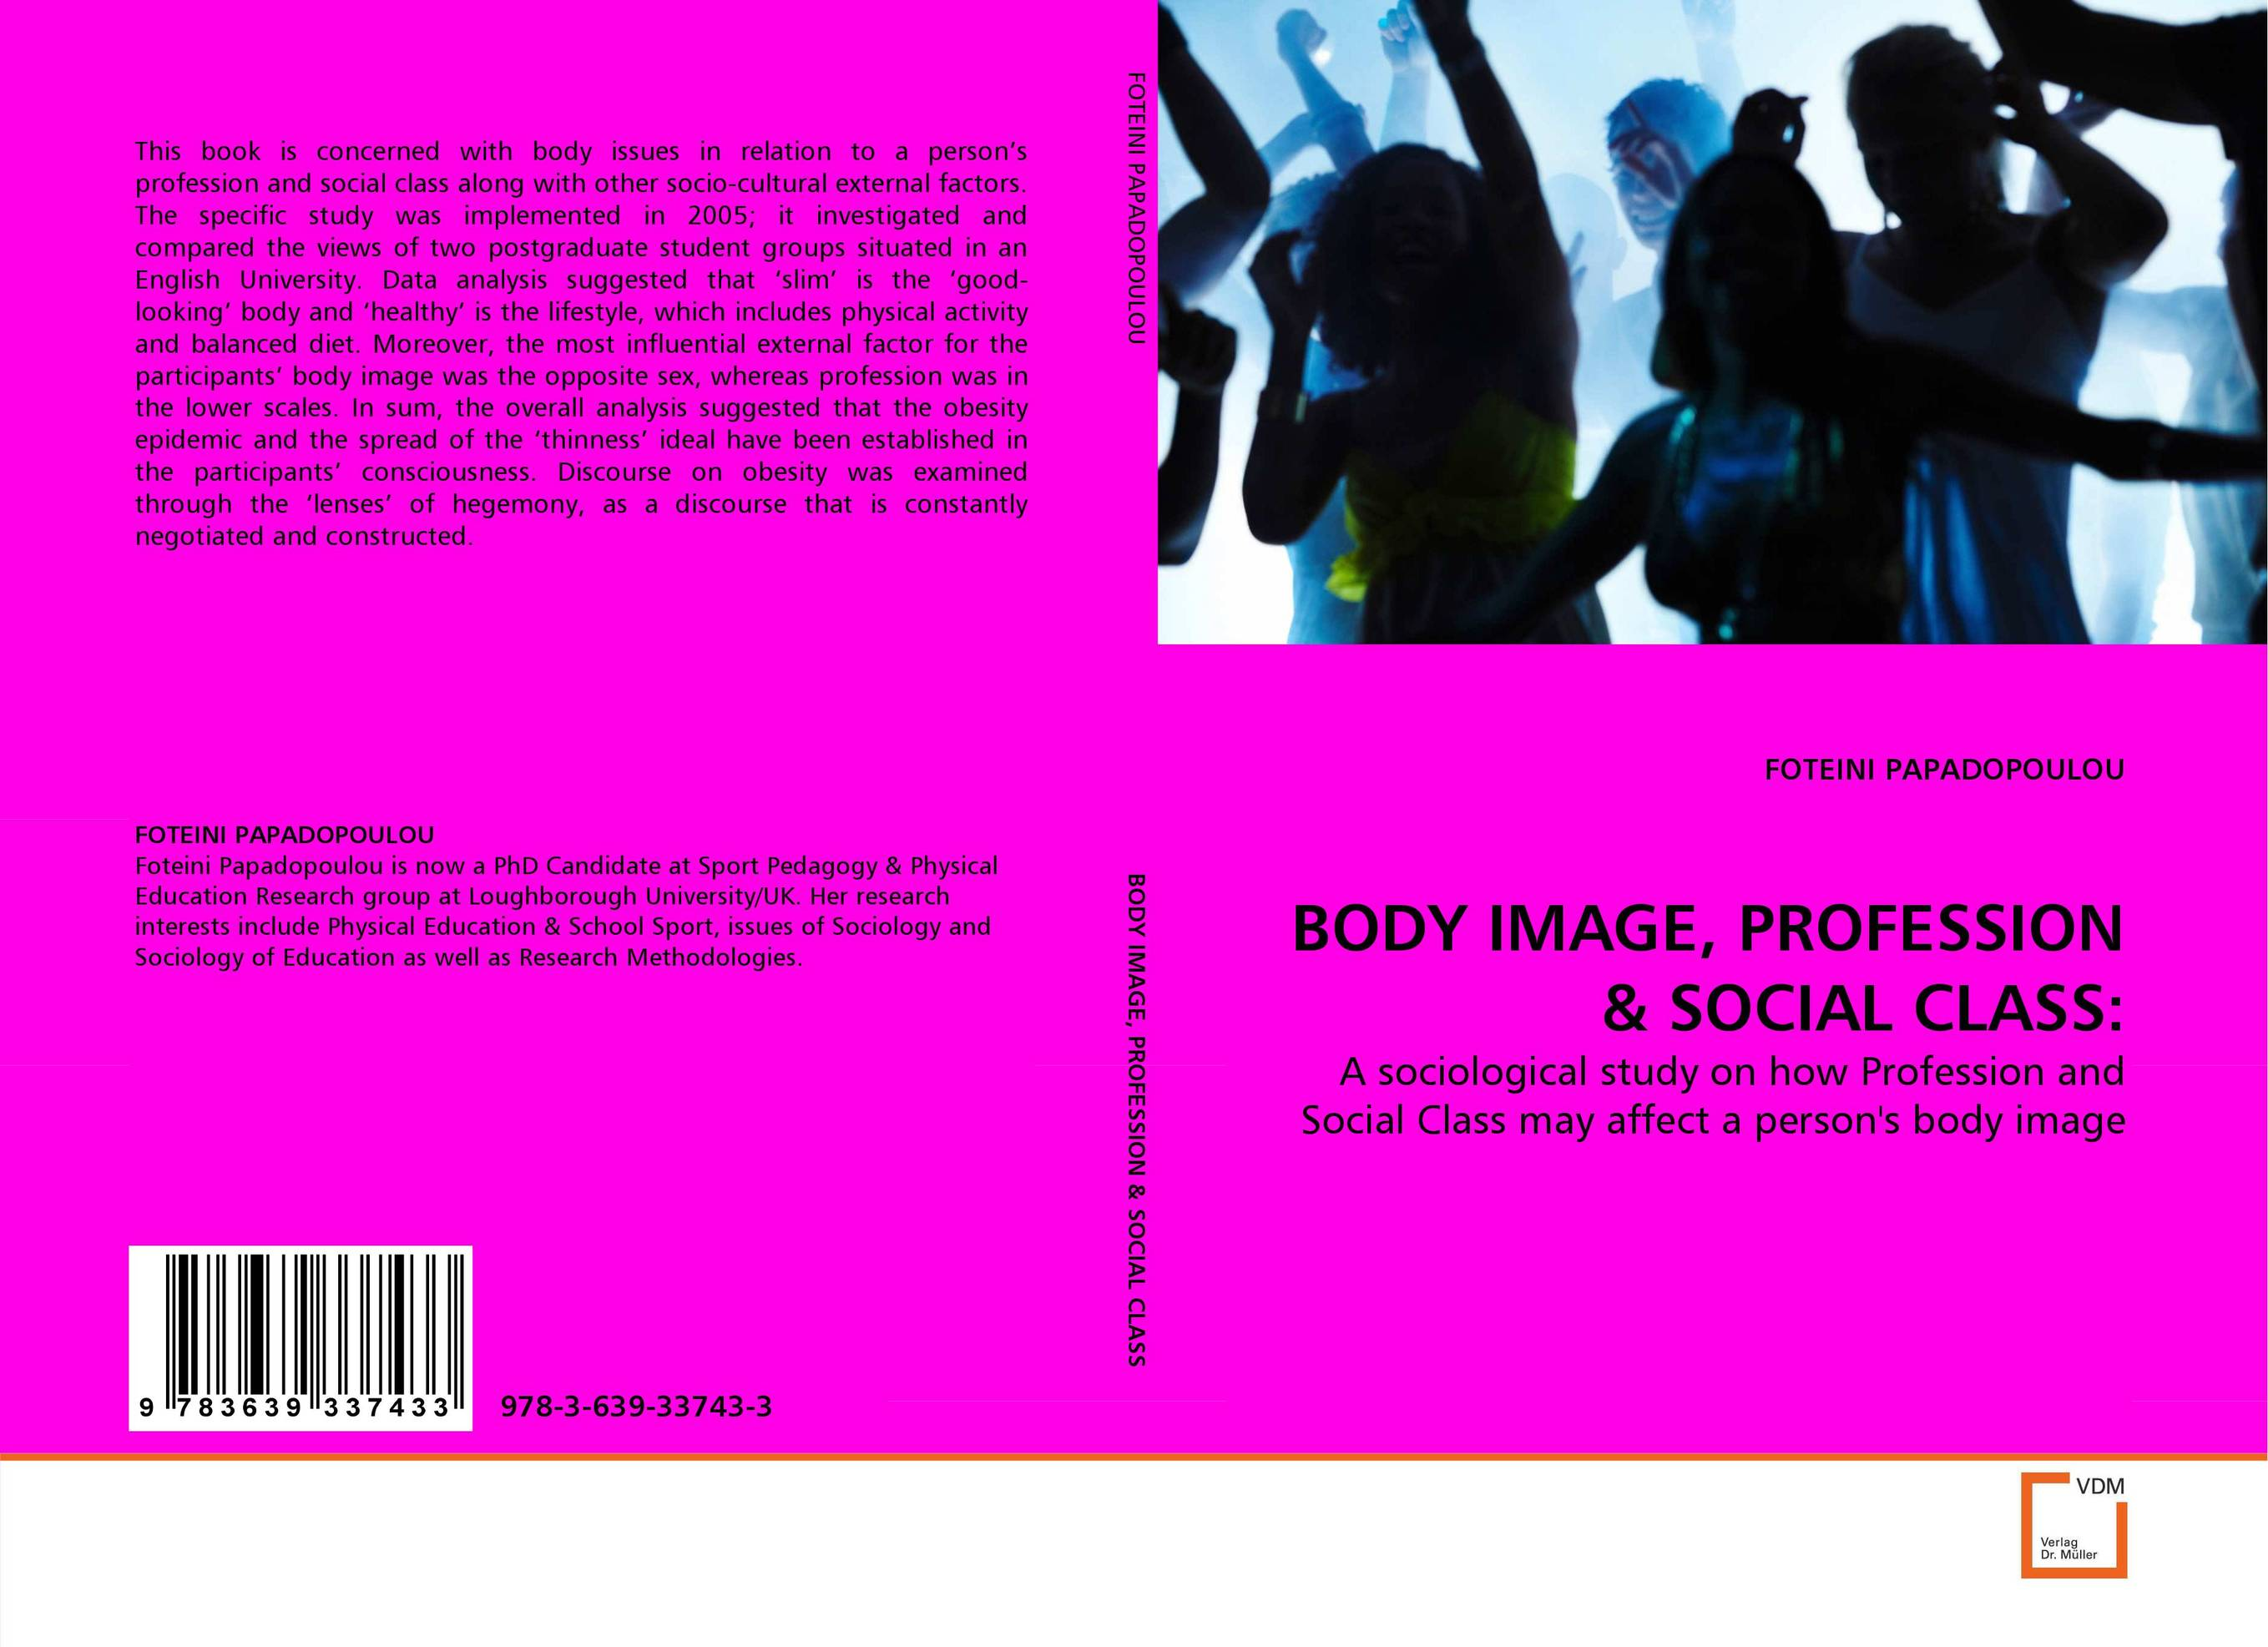 BODY IMAGE, PROFESSION & SOCIAL CLASS: lucie baker and eyal gringart body image in older adulthood